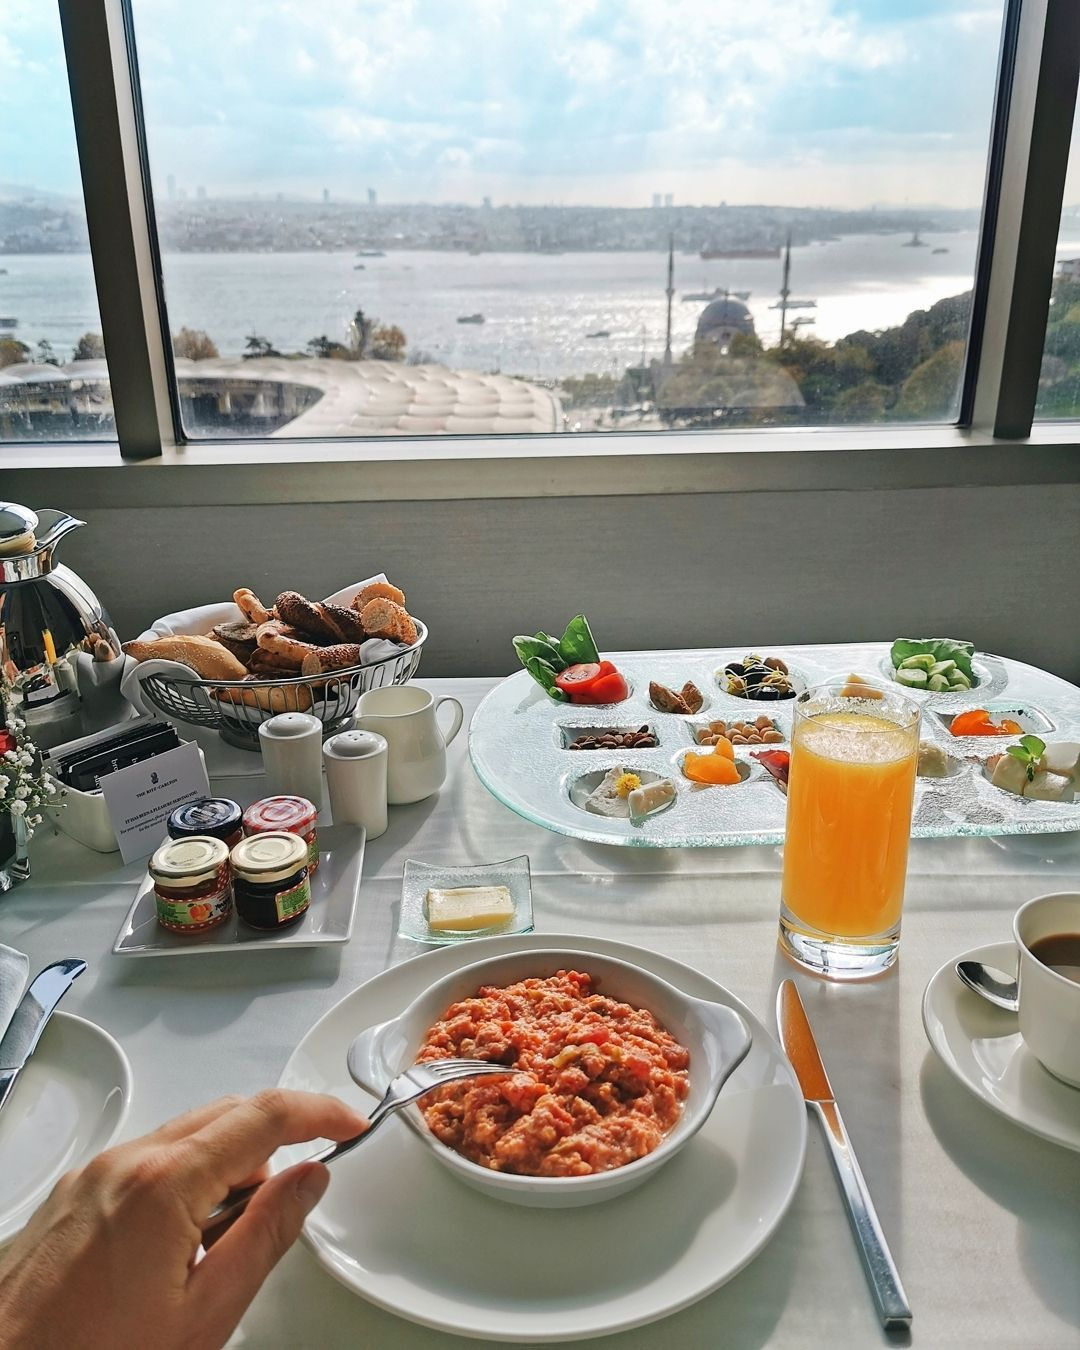 "ᴡʜᴇʀᴇɪꜱᴀʟʙʏ | ʟᴜxᴜʀʏ ᴛʀᴀᴠᴇʟ on Instagram: ""Turkish breakfast  ᴡʜᴇʀᴇɪꜱᴀʟʙʏ 